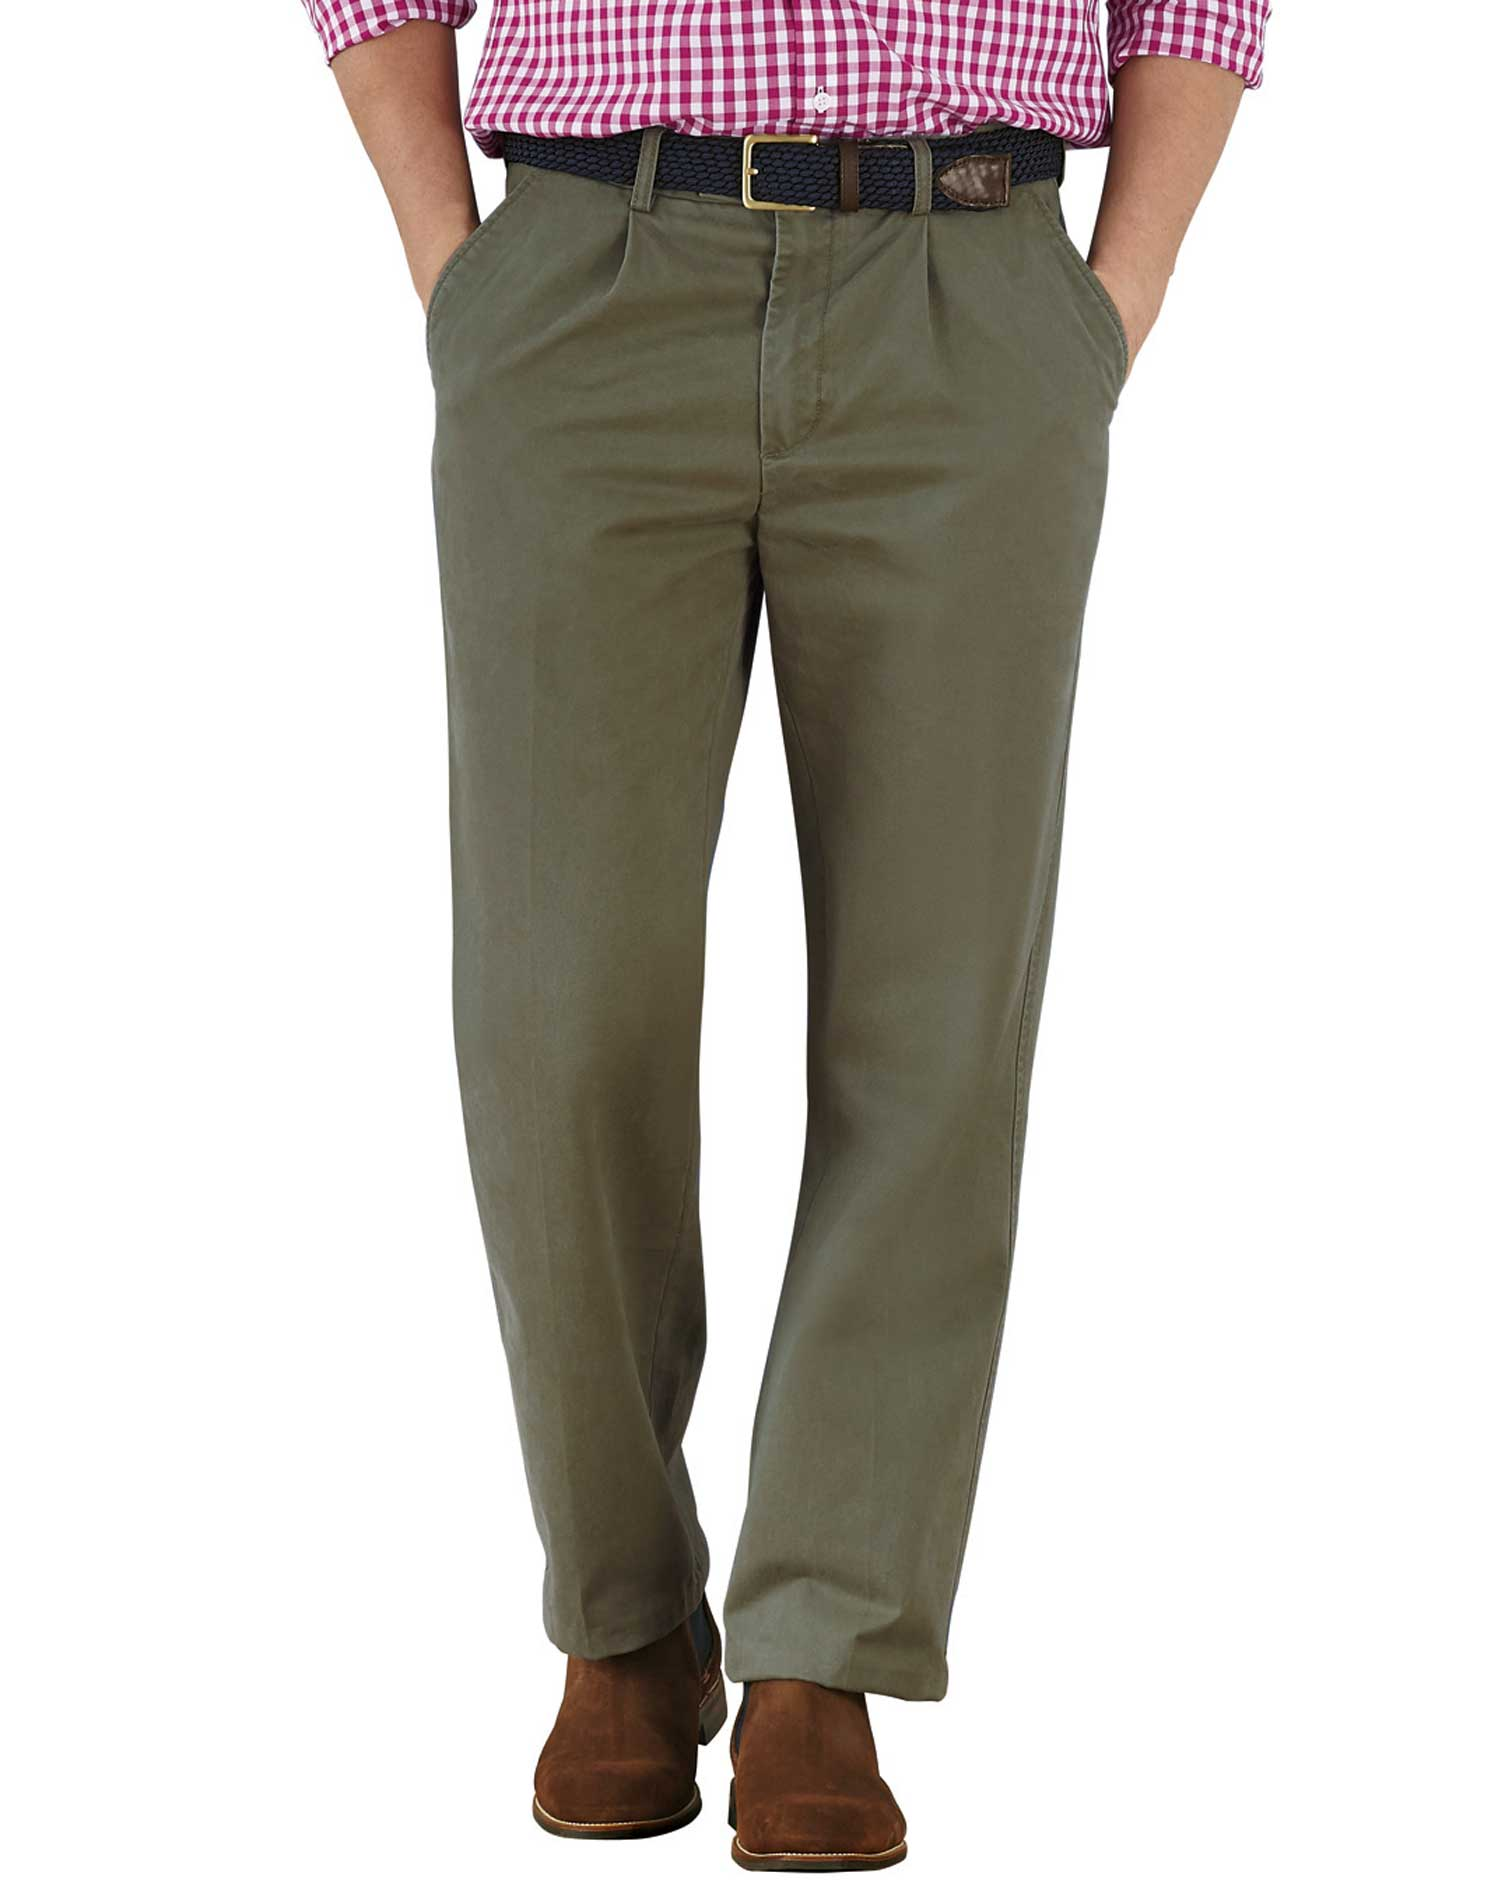 Olive Classic Fit Single Pleat Cotton Chino Trousers Size W36 L38 by Charles Tyrwhitt